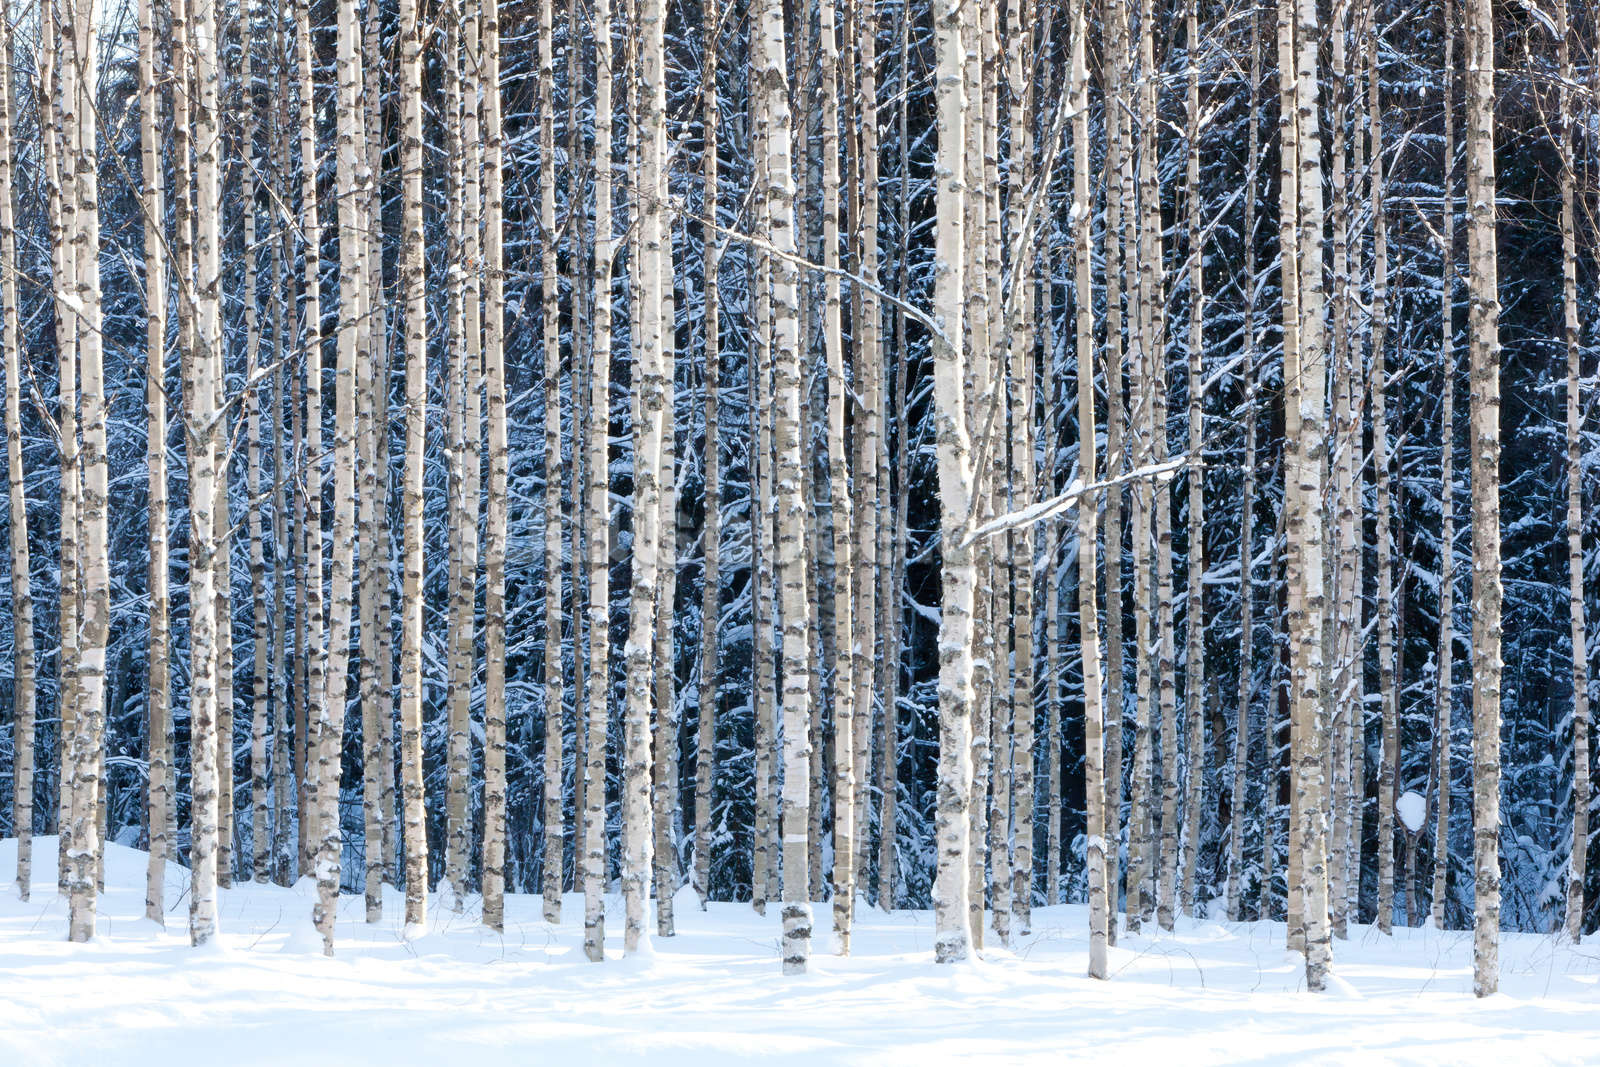 Snowy Birch Forest Wallpaper Wall Mural Wallsauce